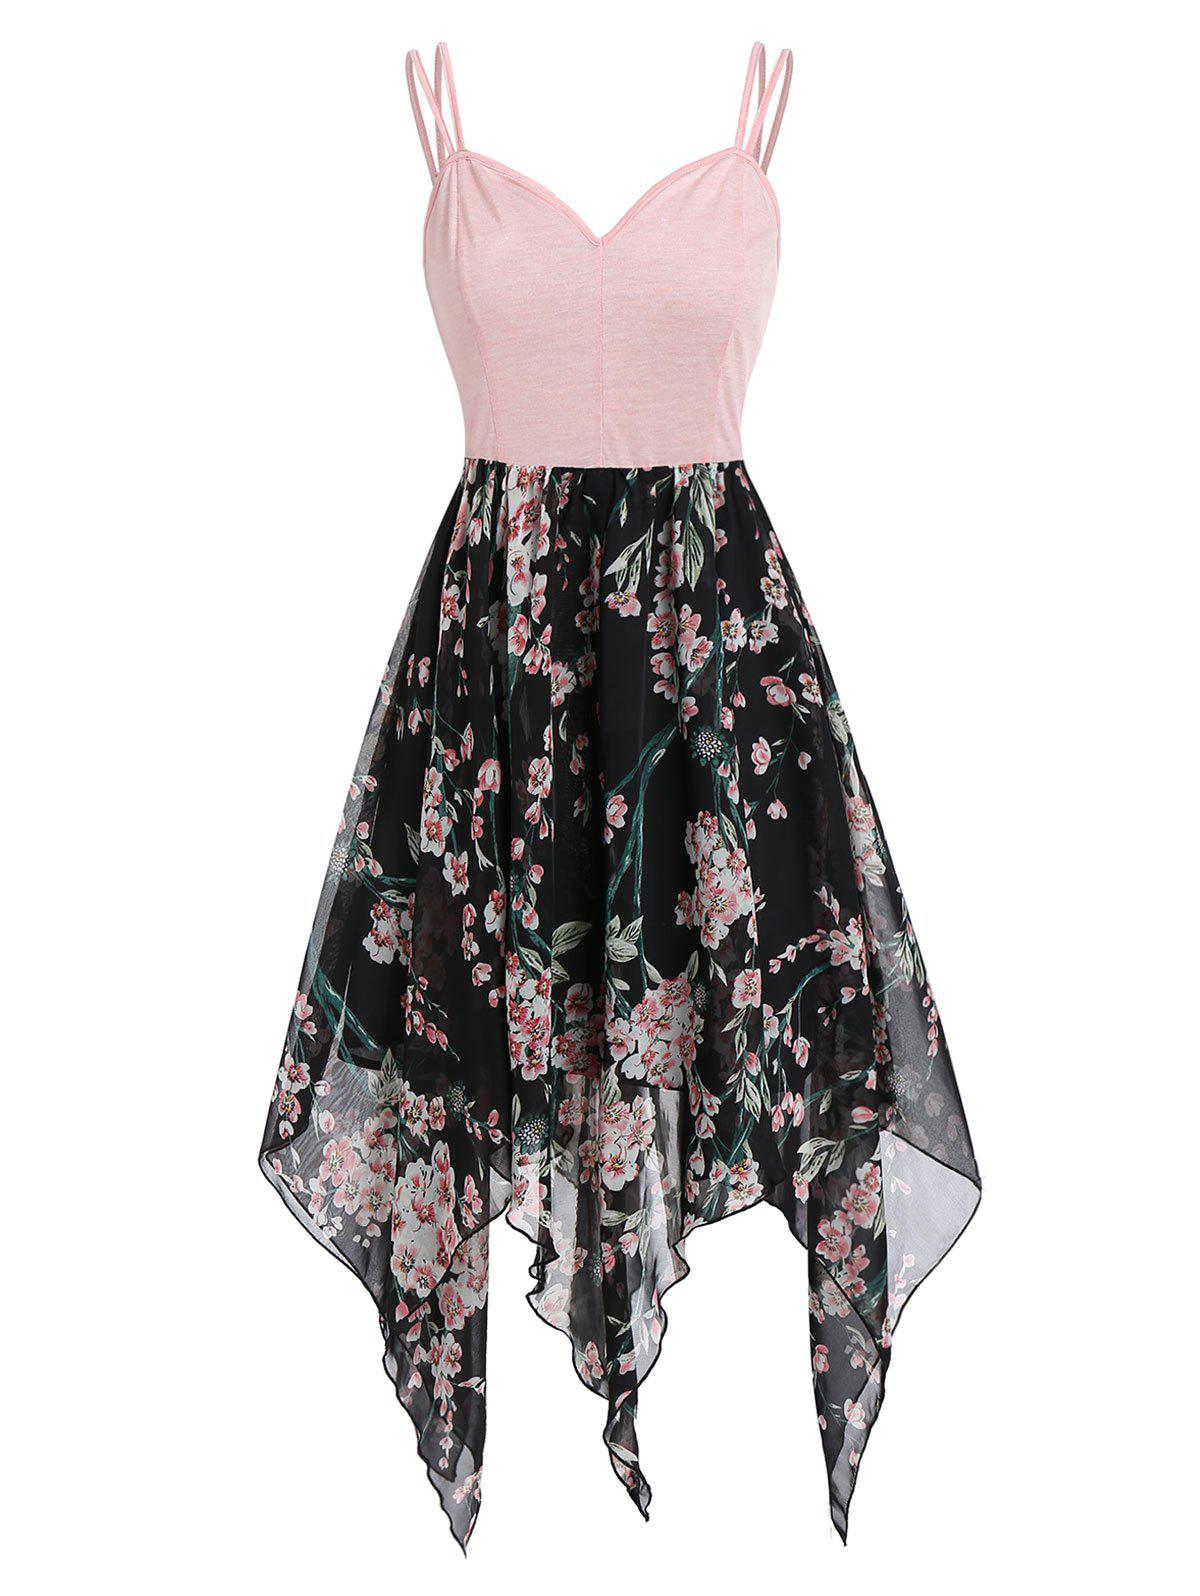 Trendy Floral Handkerchief Asymmetric Cami Dress